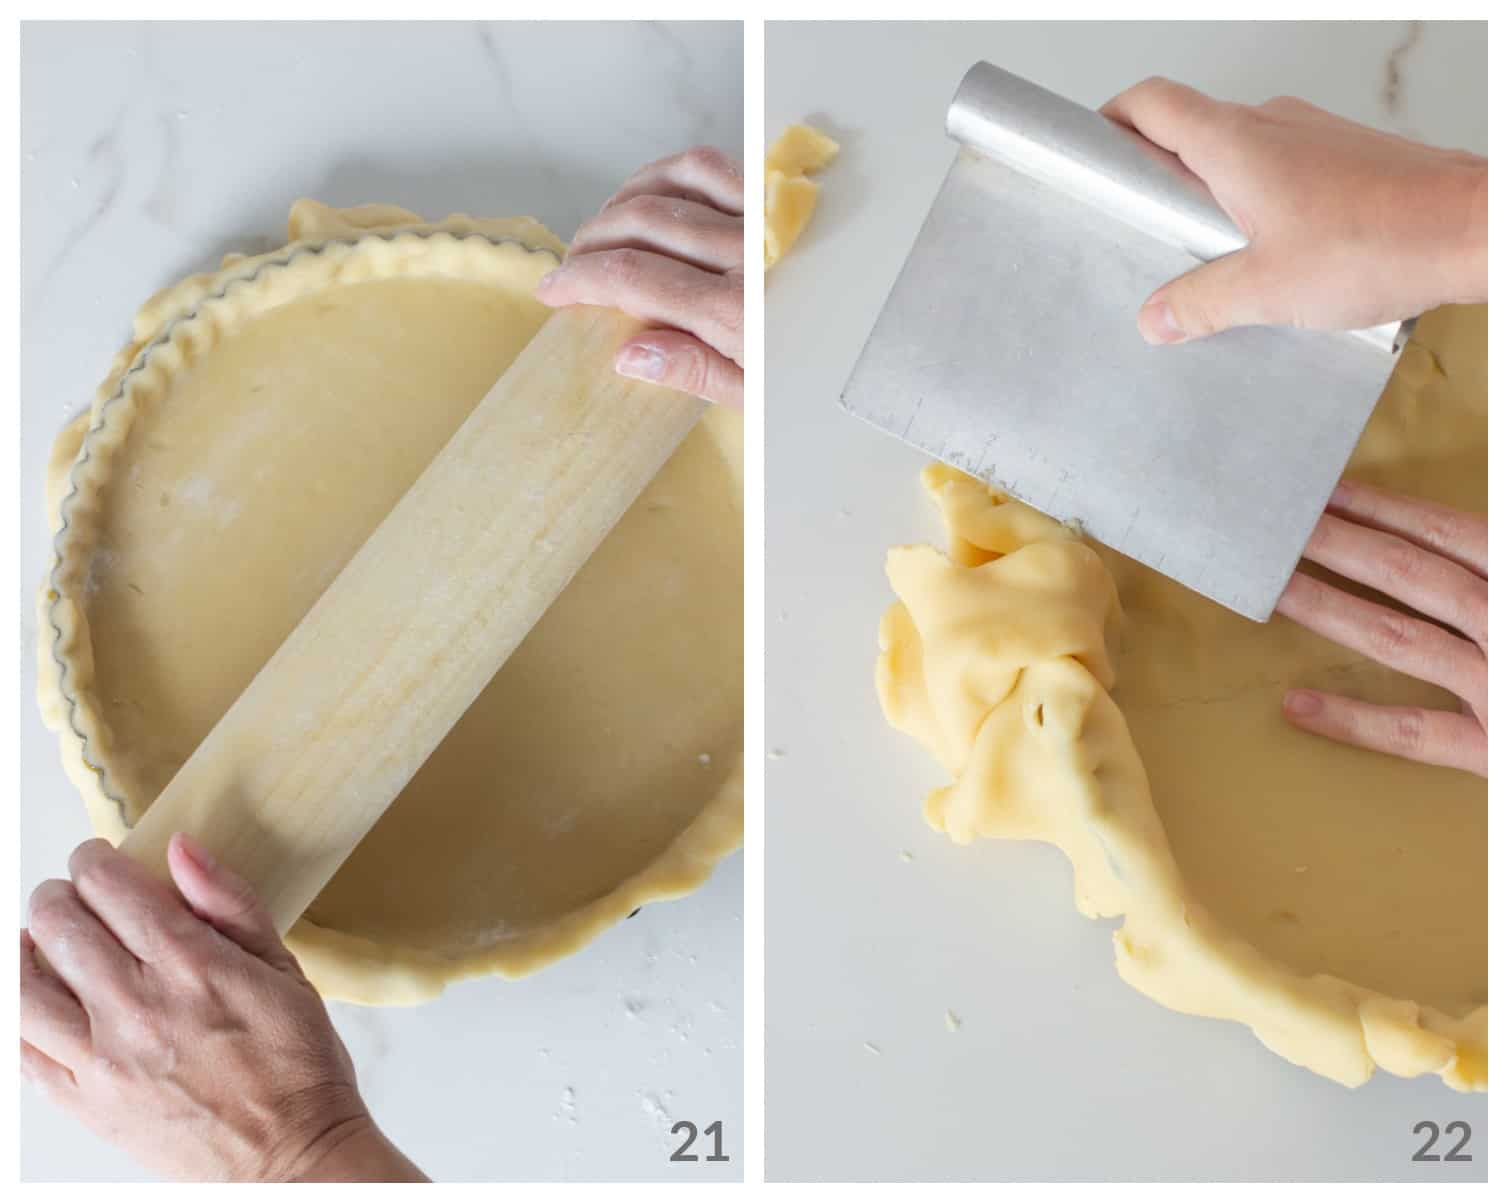 Rolling pin over unbaked pie dough; using scraper to remove excess dough, collage